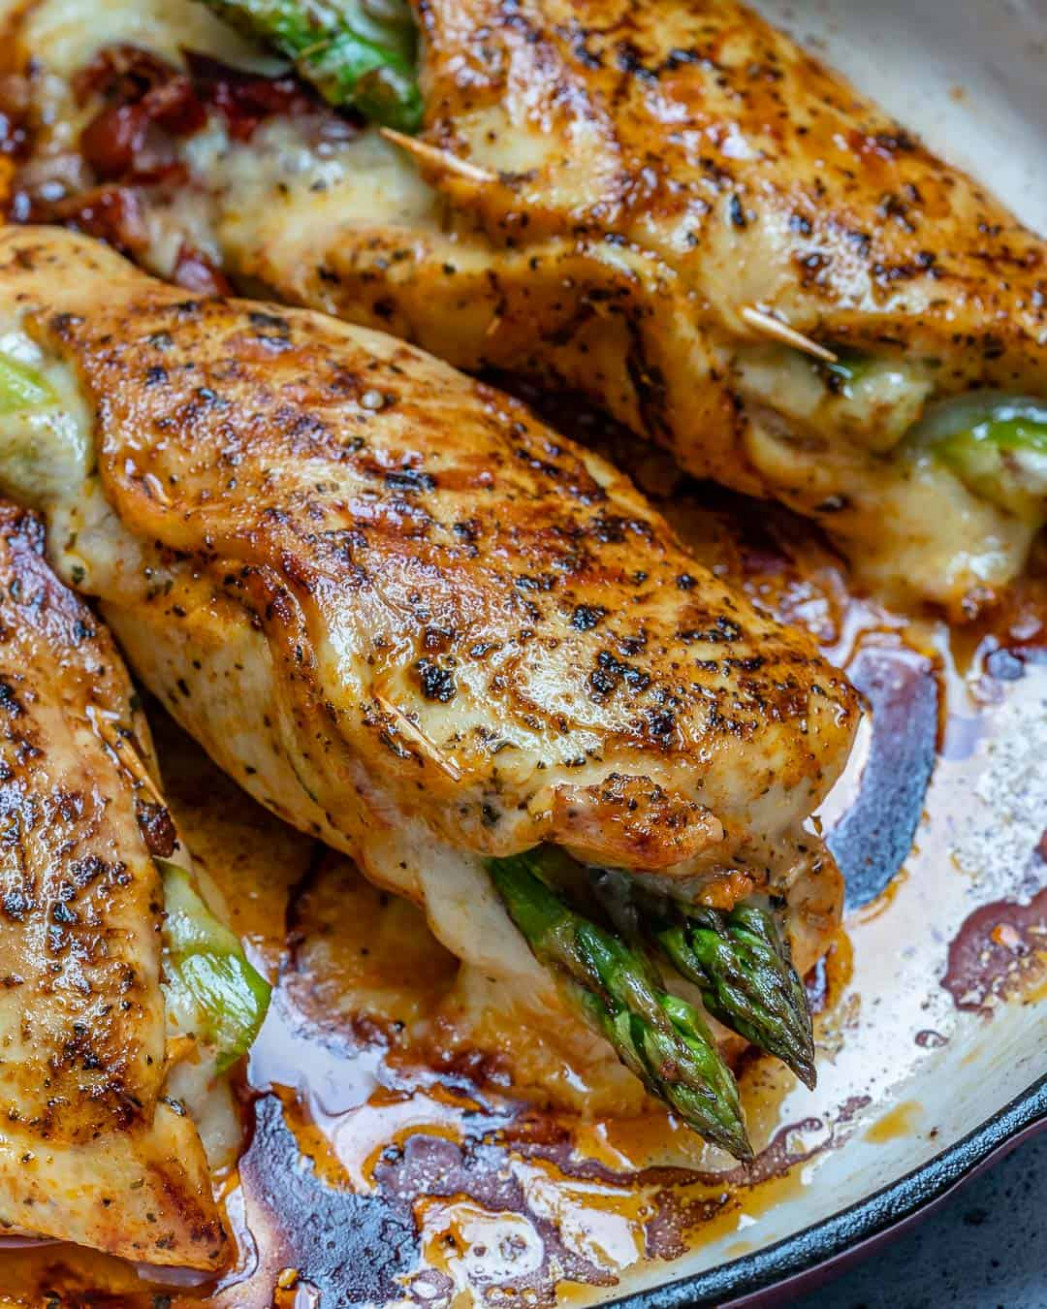 Asparagus Stuffed Chicken Breast - recipes using cooked chicken